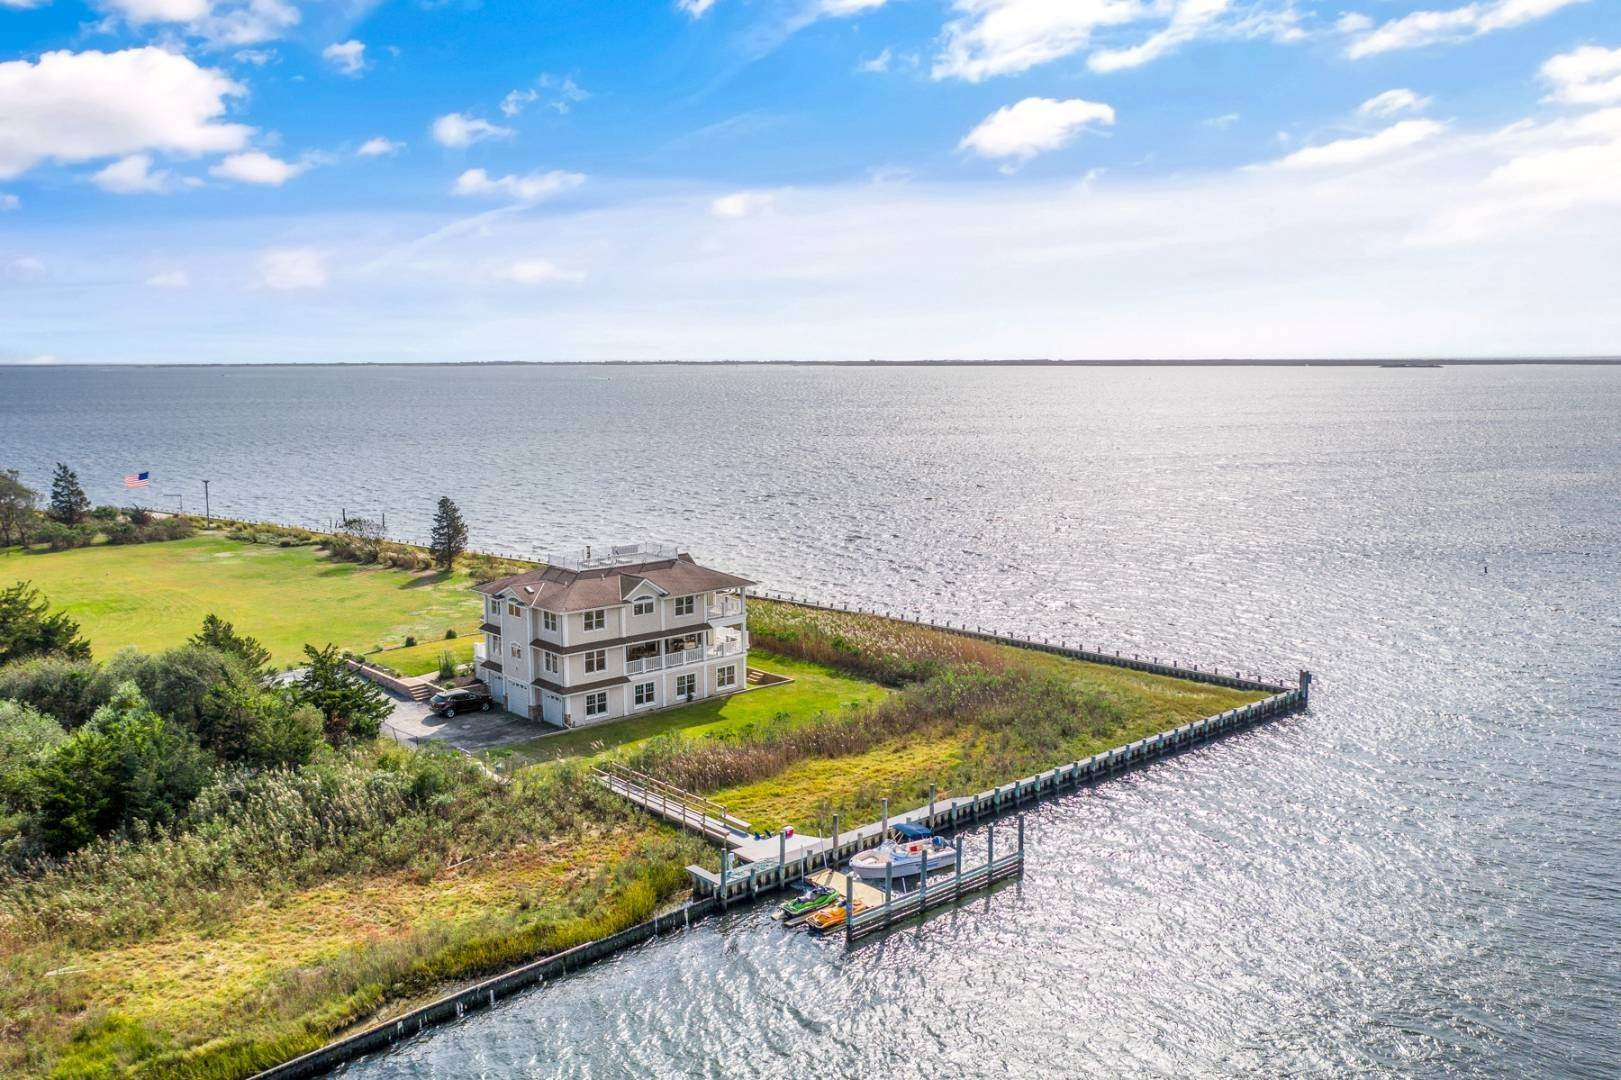 Single Family Home for Sale at Panoramic Waterfront Home 7 Convent Lane, Center Moriches, NY 11934